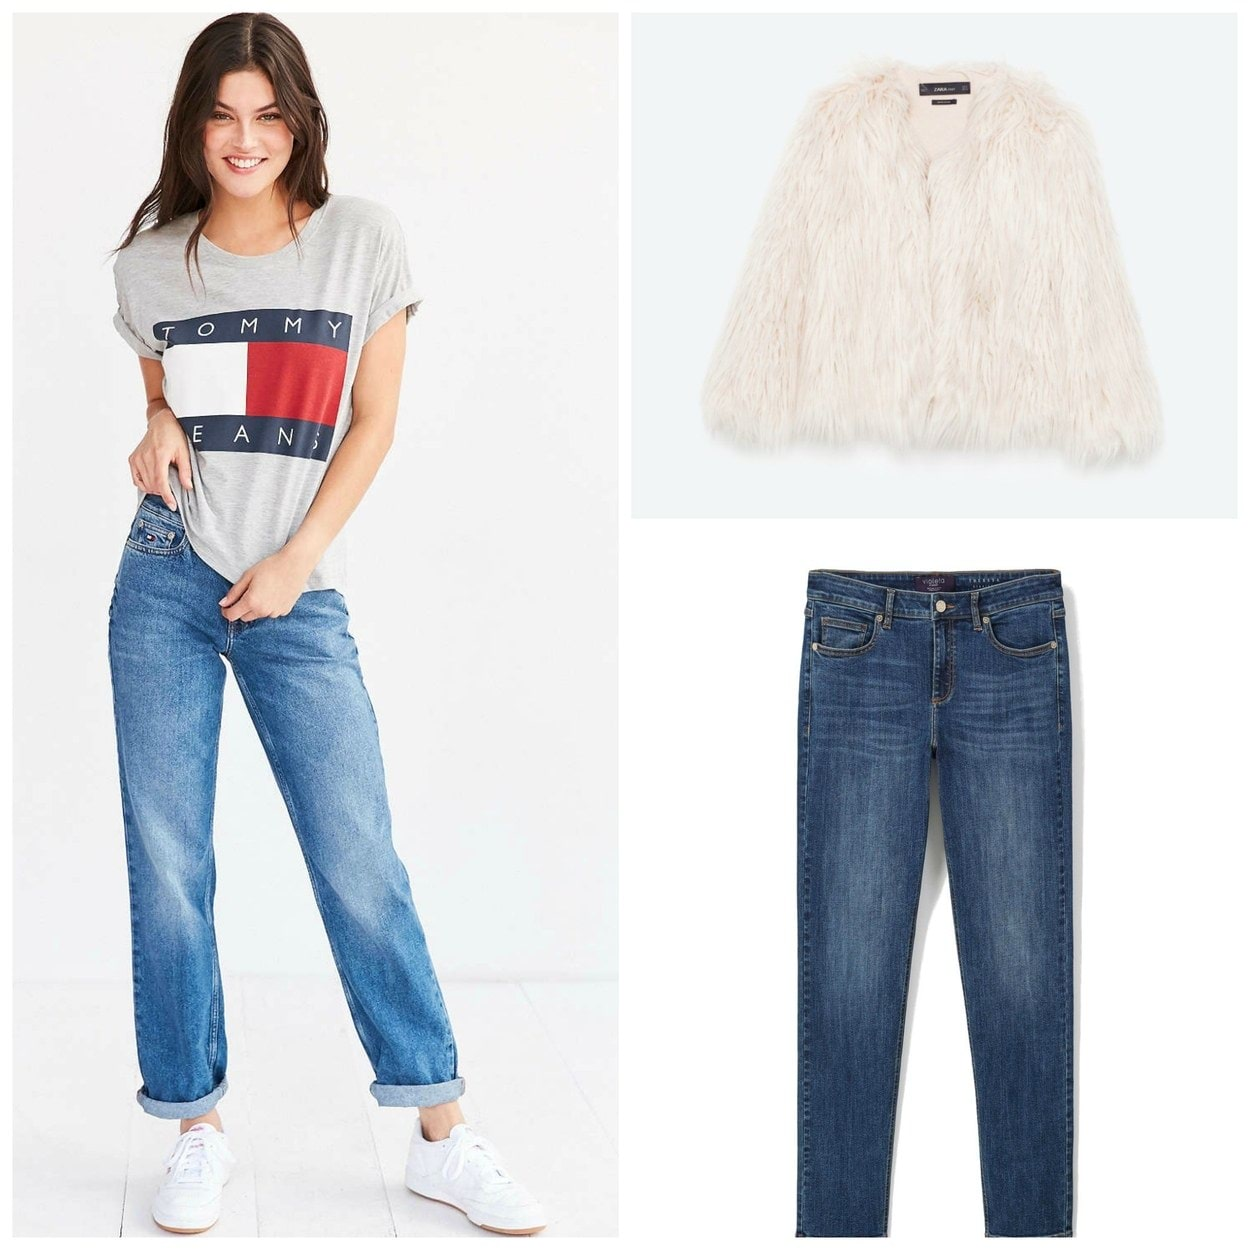 tommy-logo-tee-fur-coat-collage